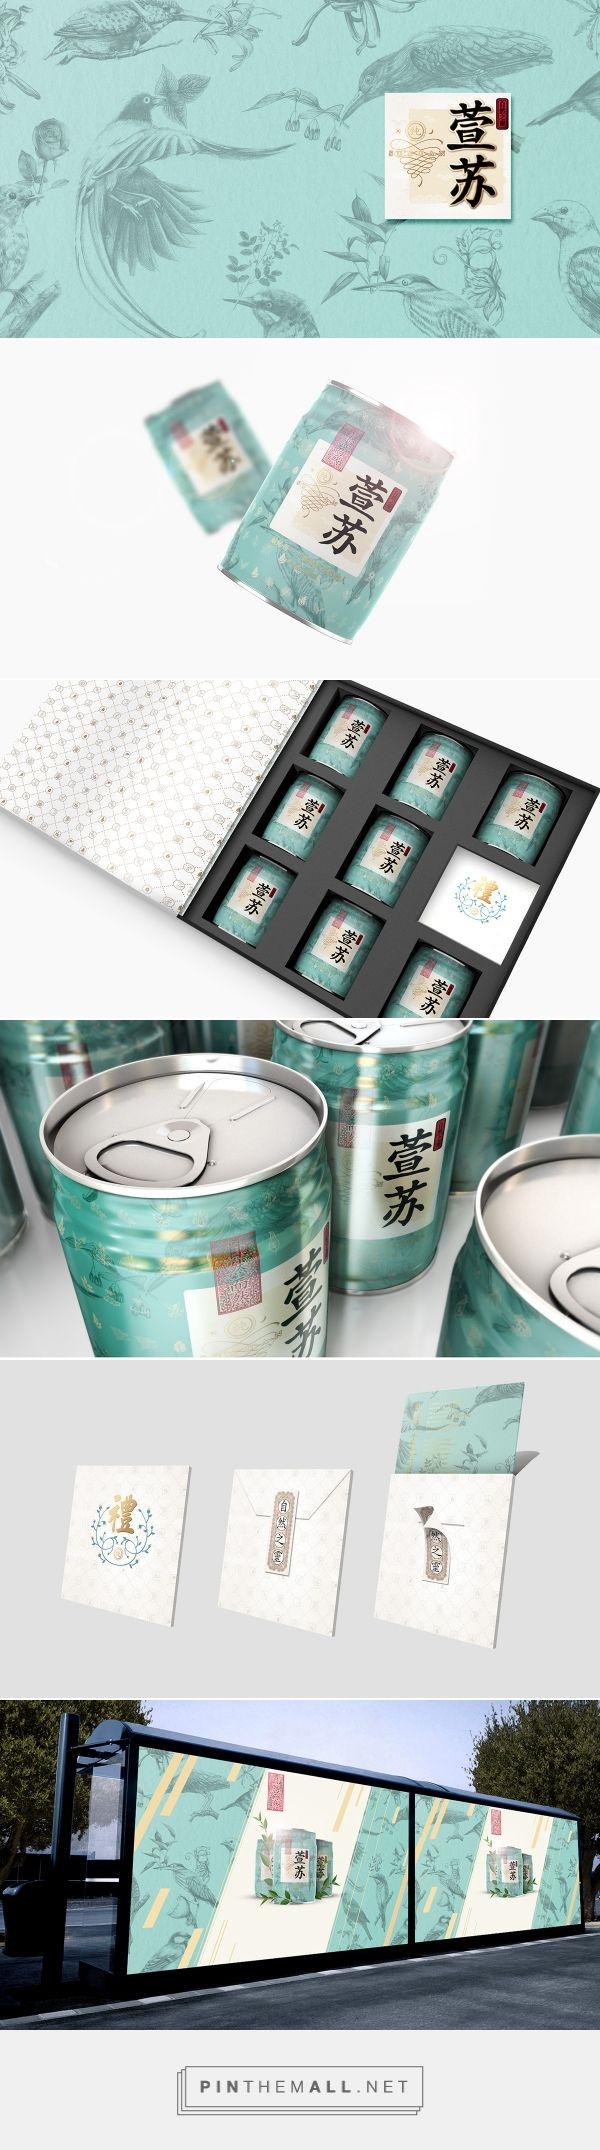 Su Xuan Branding and Packaging by Xiongbo Deng   Fivestar Branding Agency – Design and Branding Agency & Curated Inspiration Gallery